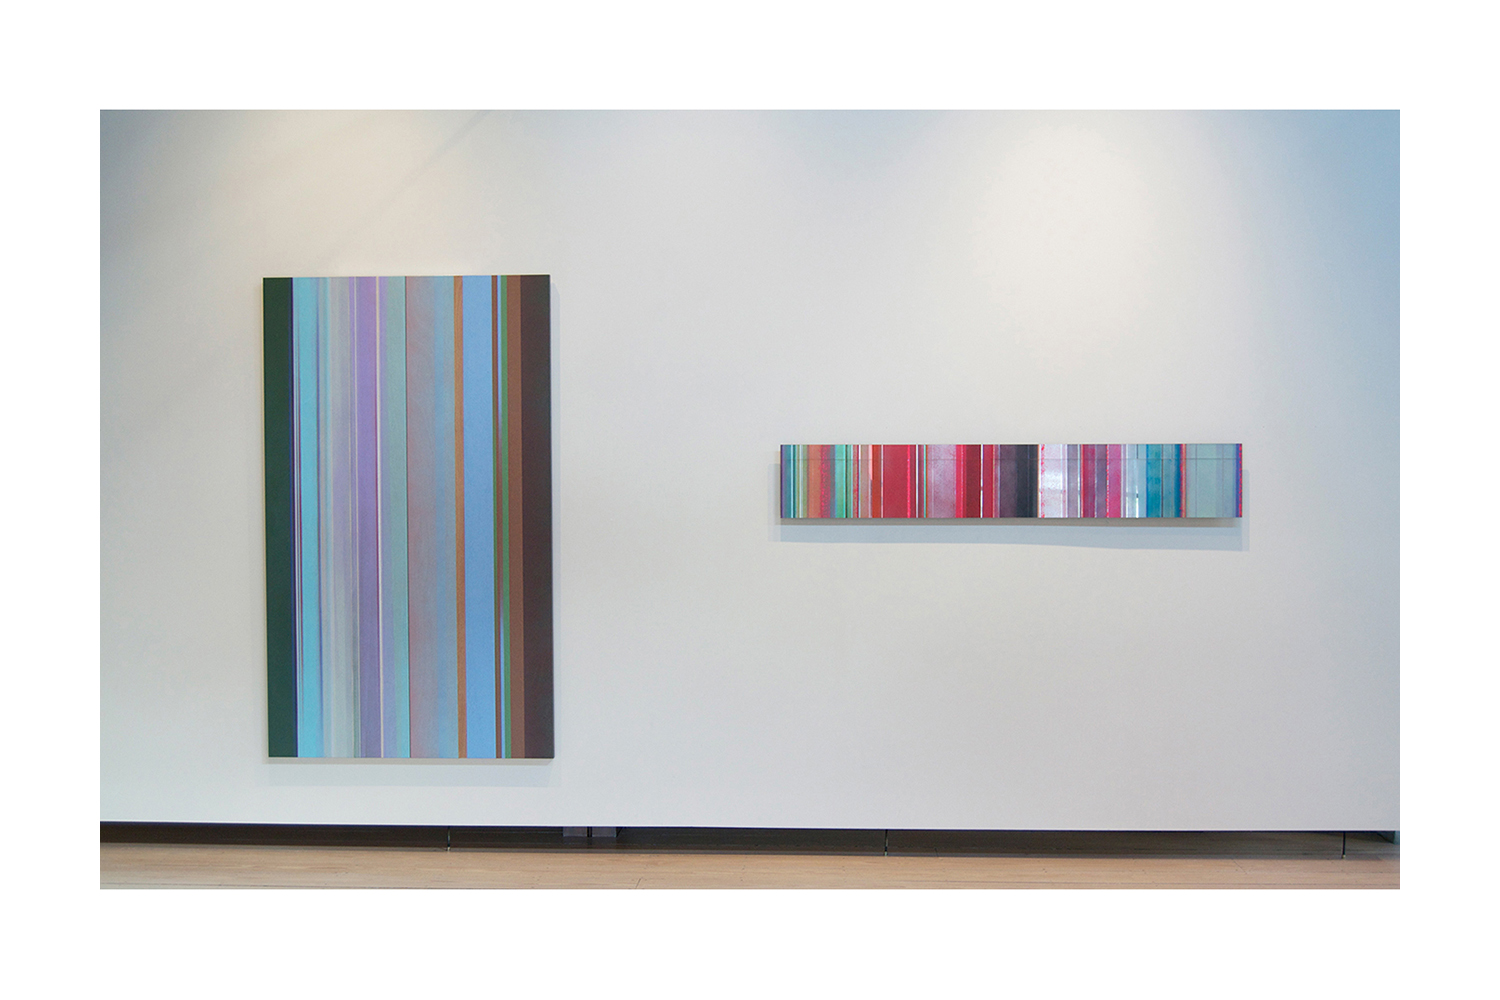 Installation View 2012 Exhibition at Morrison Gallery